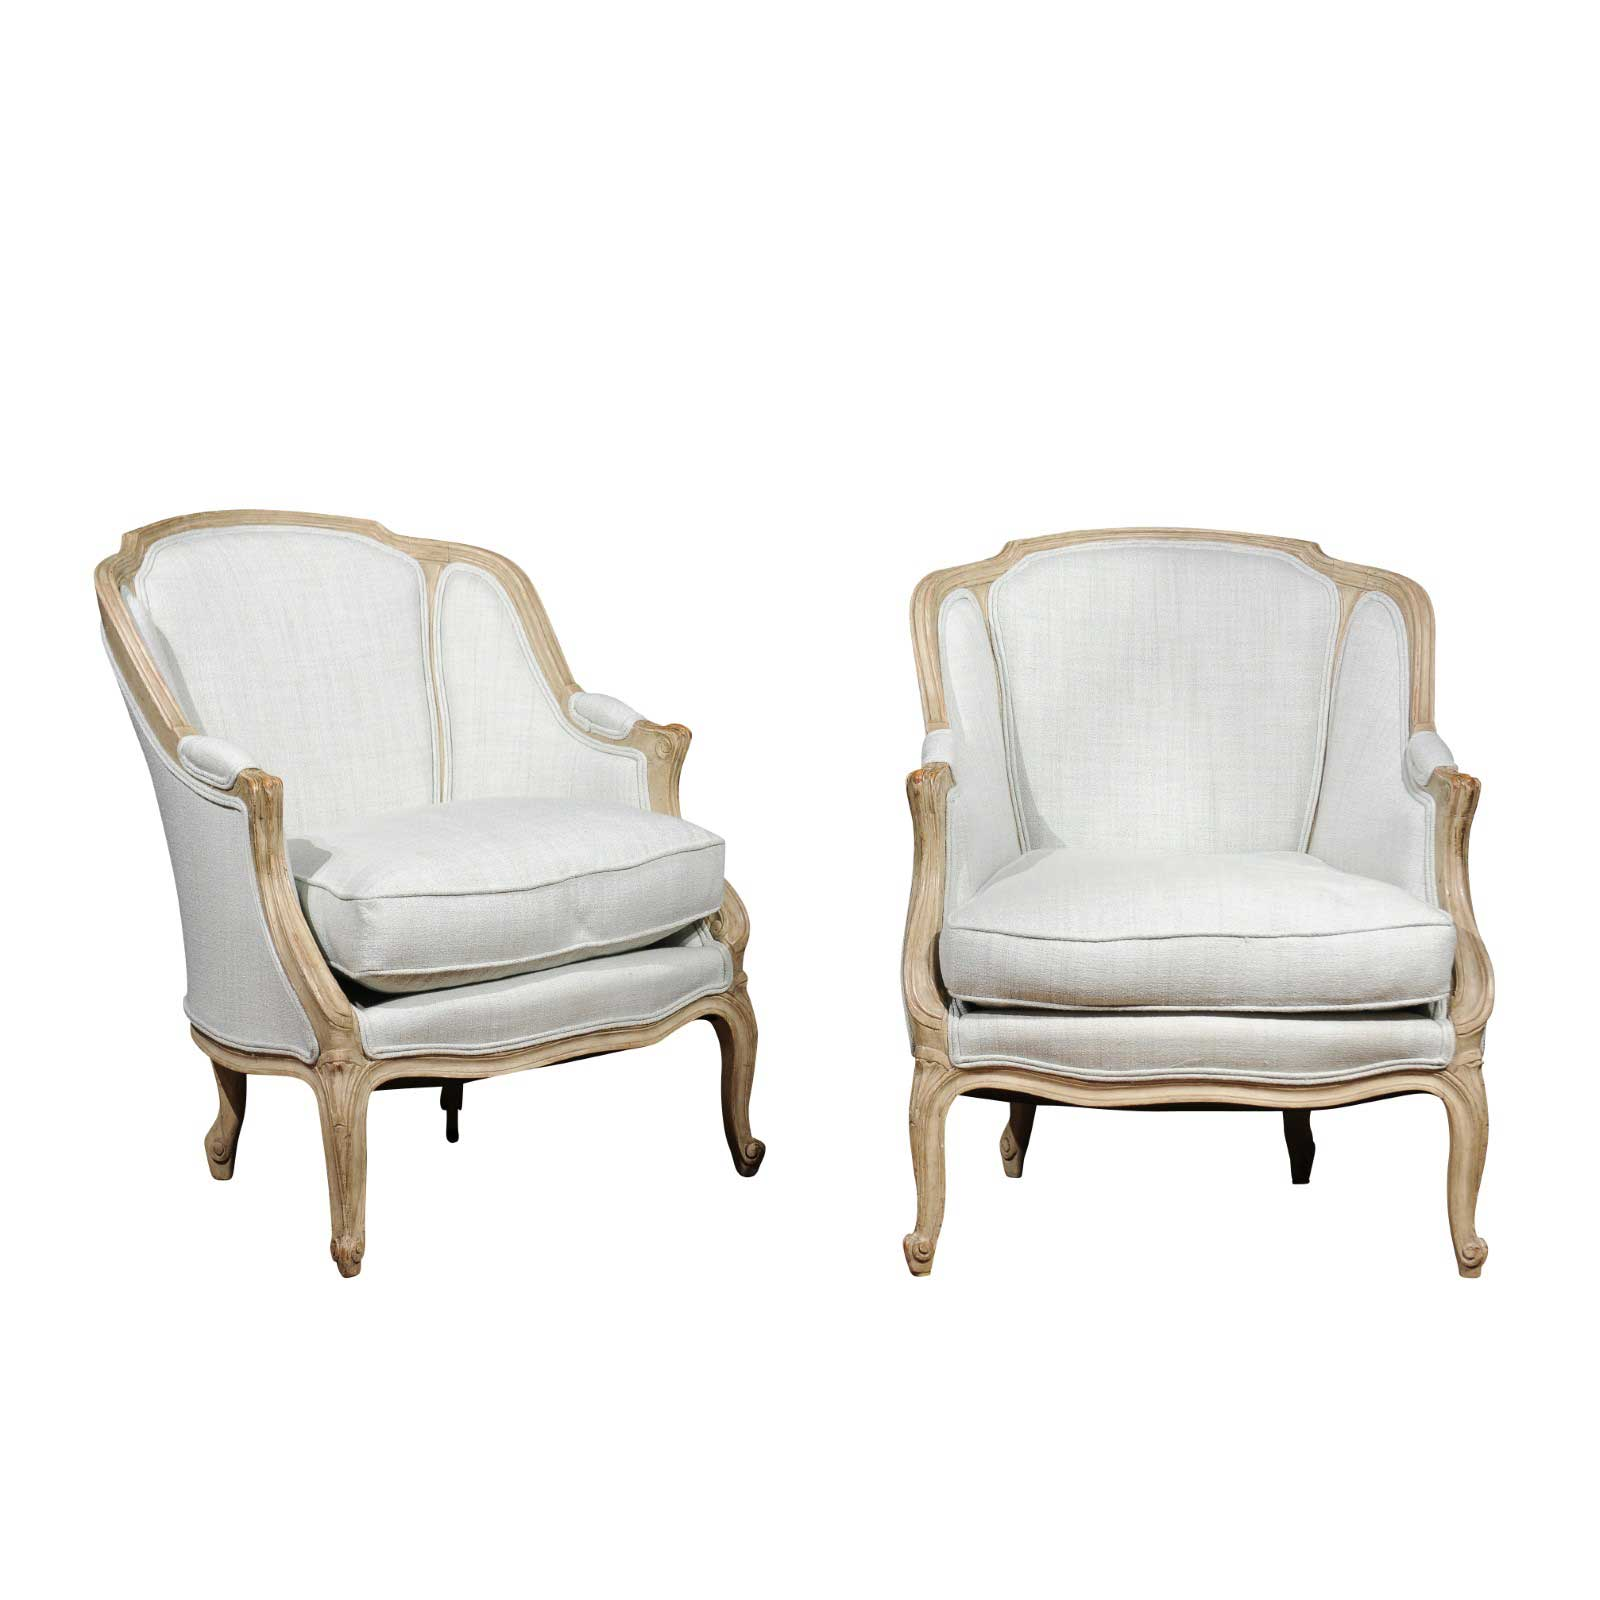 louis xv chair chairscape flooring pair of french style 1880s bergeres chairs with wraparound